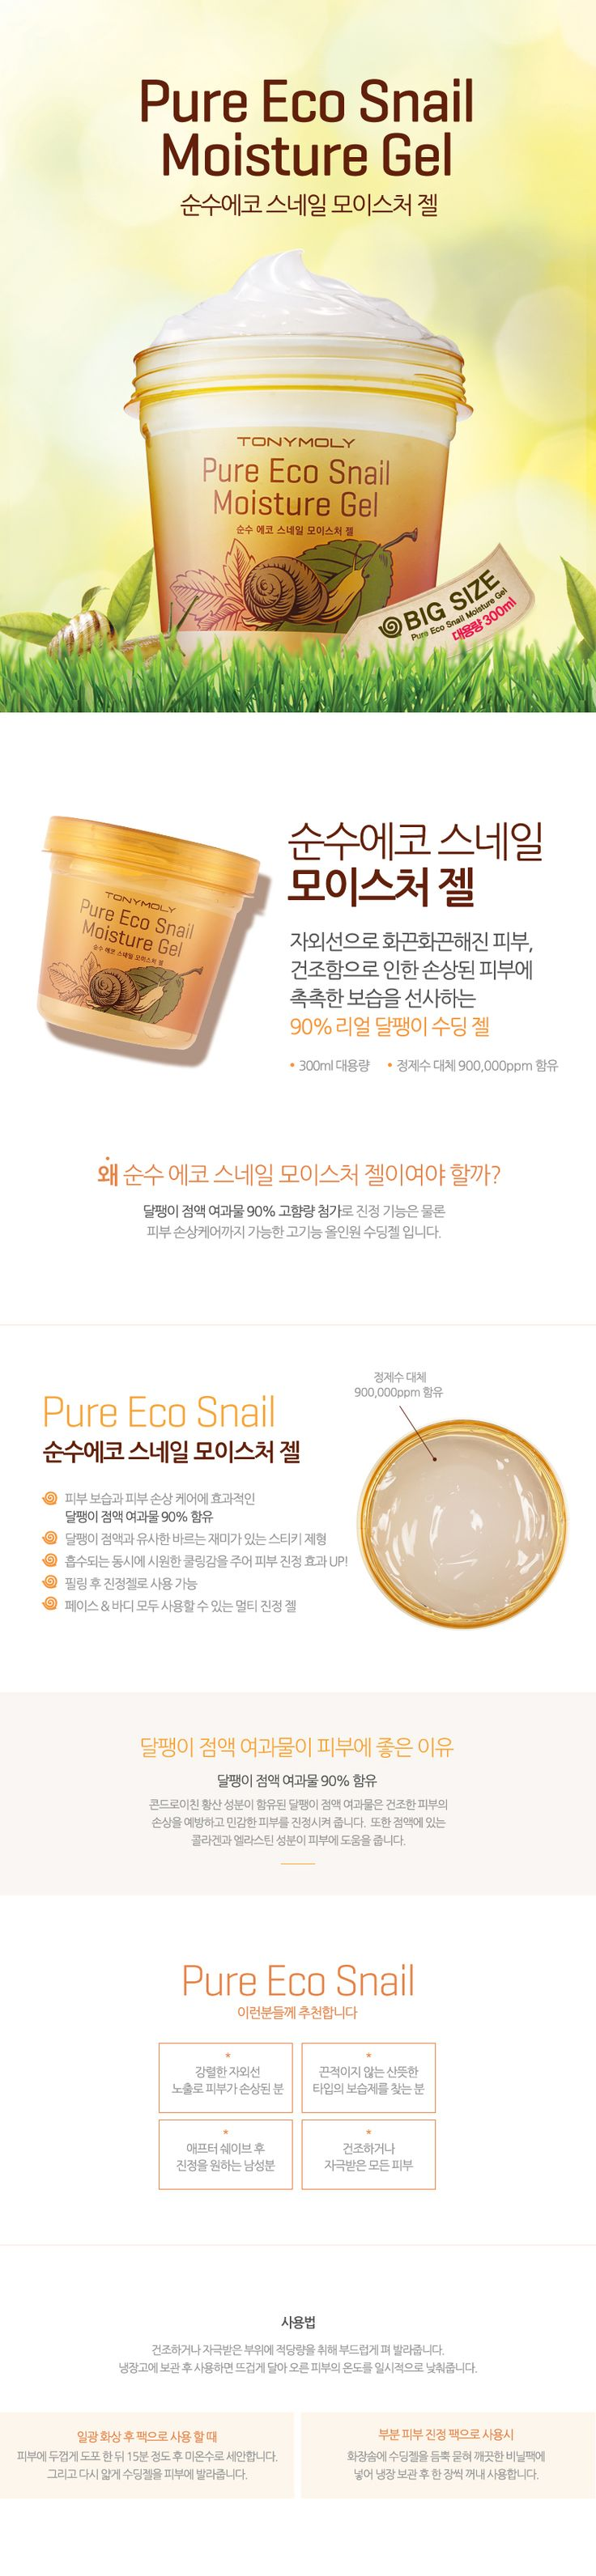 Tony Moly Pure Eco Snail Moisture Gel | The Cutest Makeup